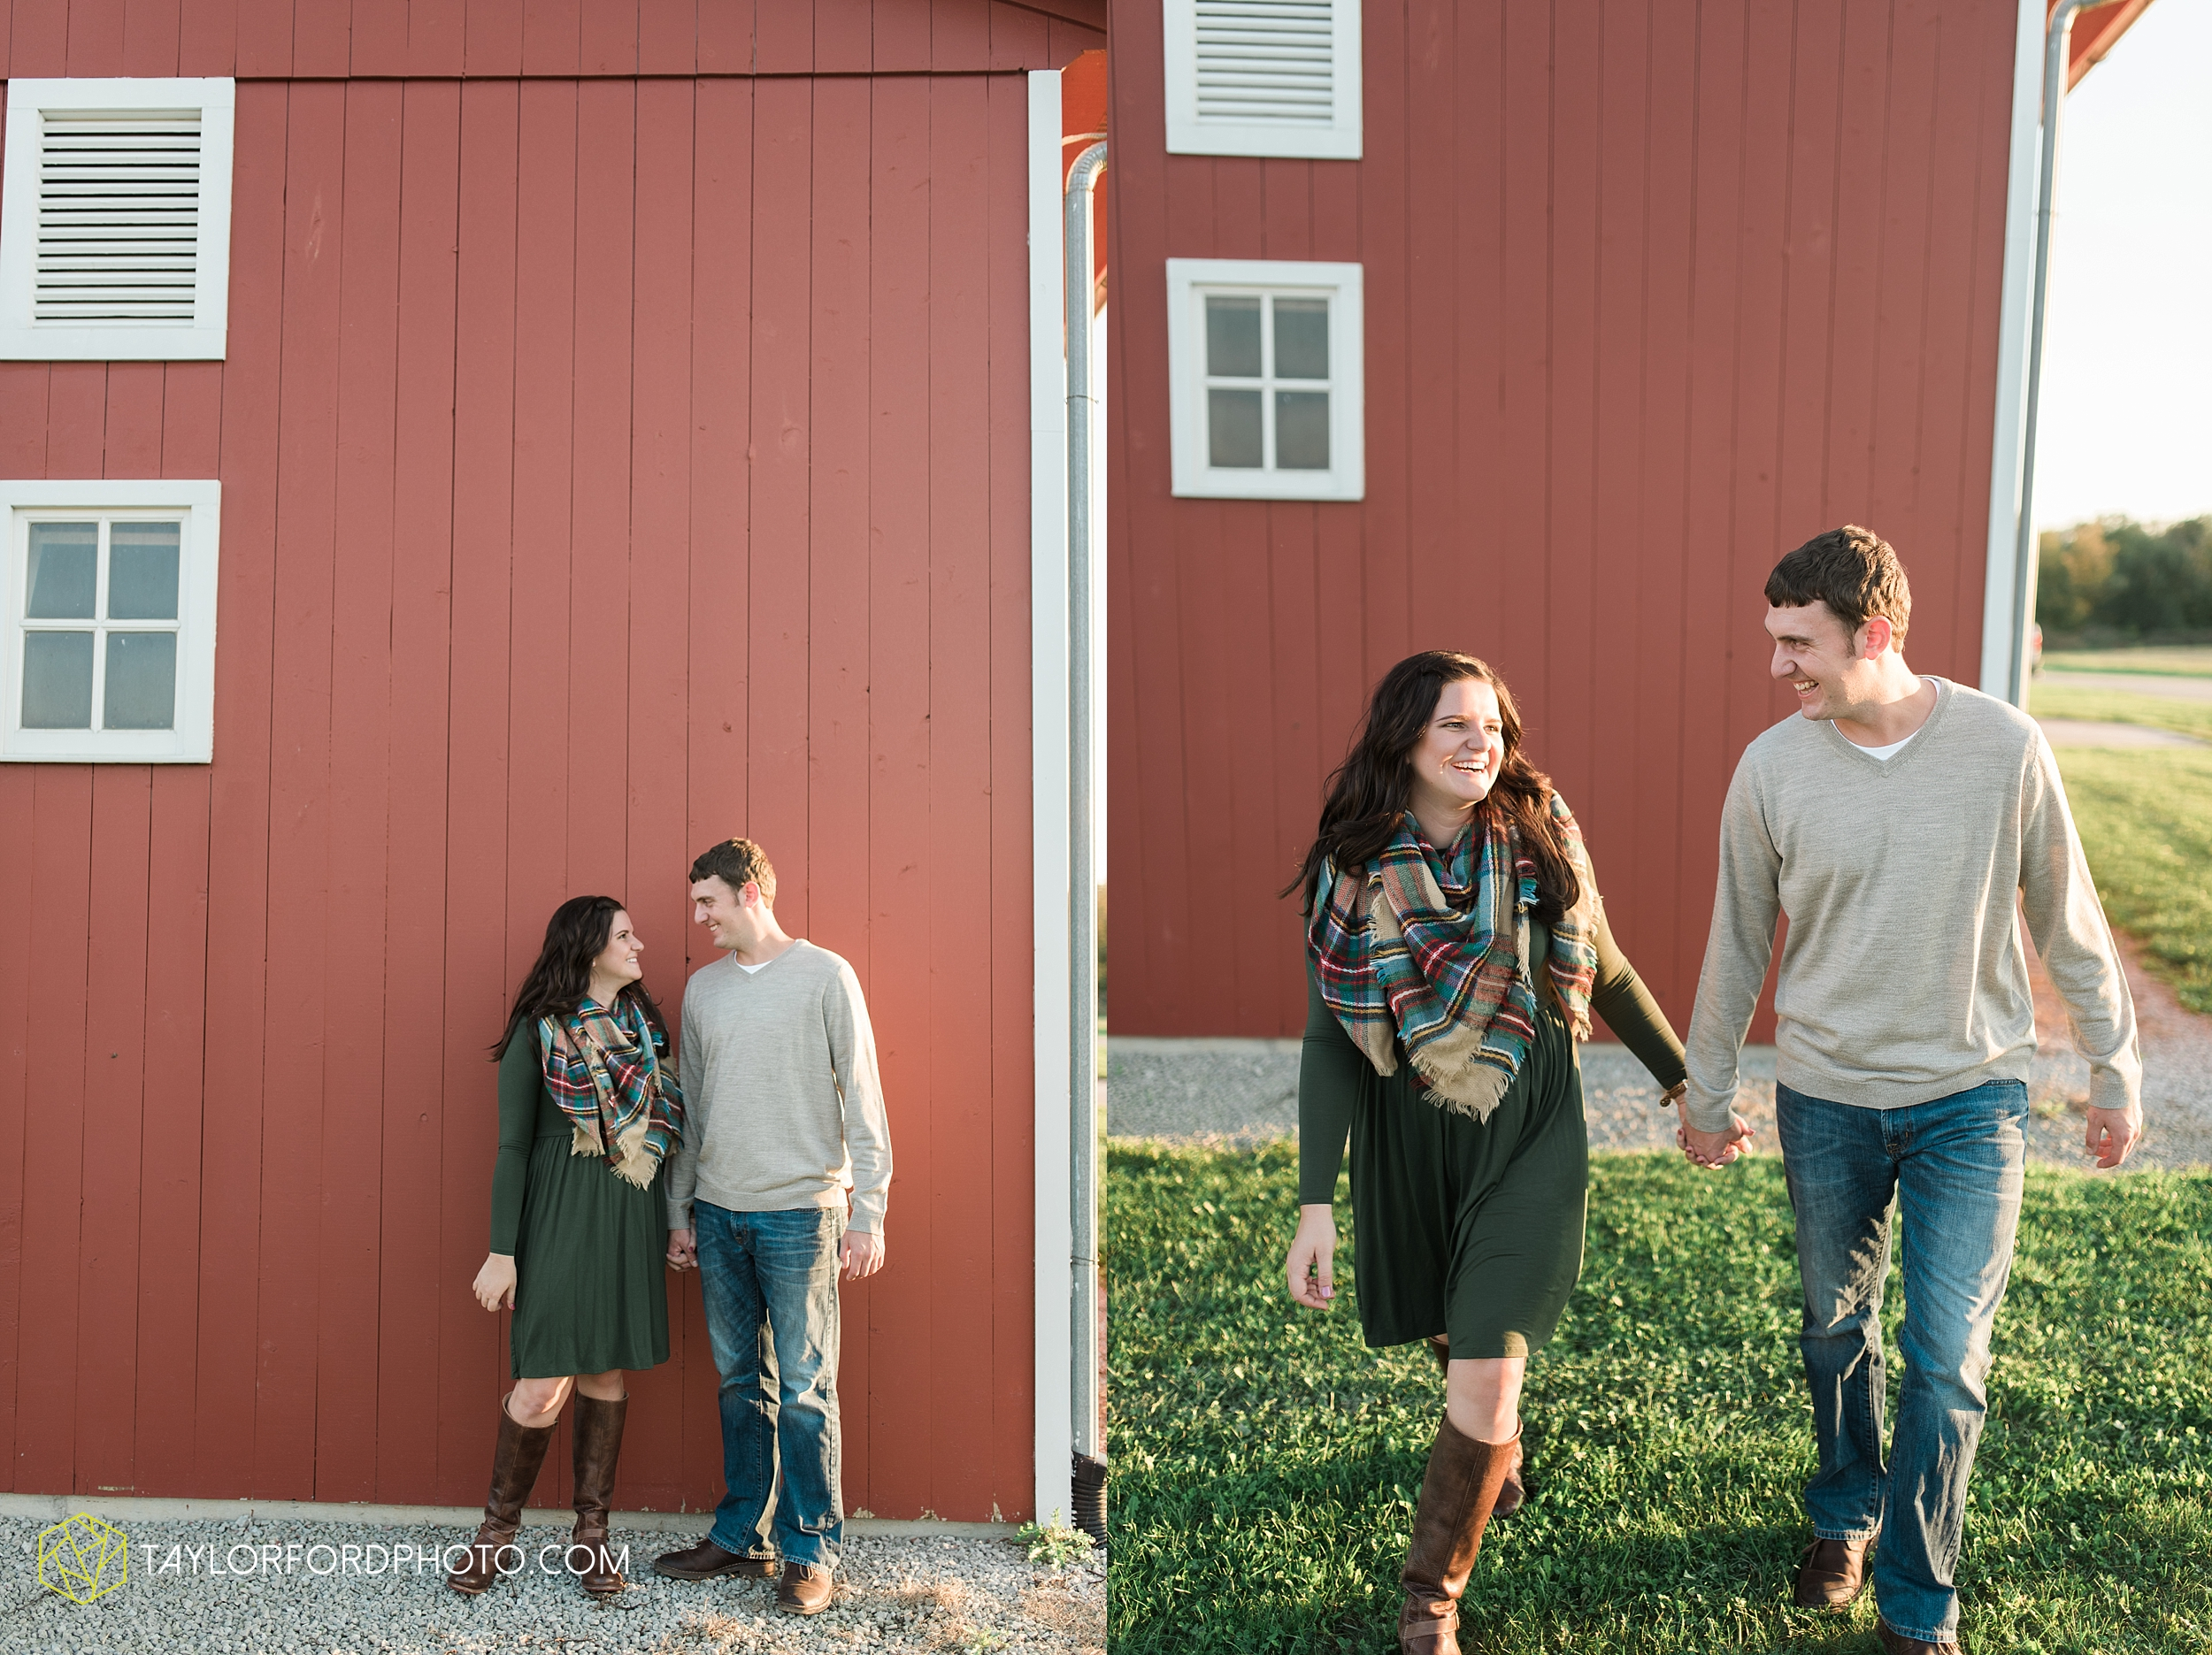 fort-wayne-indiana-engagement-wedding-photographer-Taylor-Ford-Photography-salomon-farm-park_3578.jpg